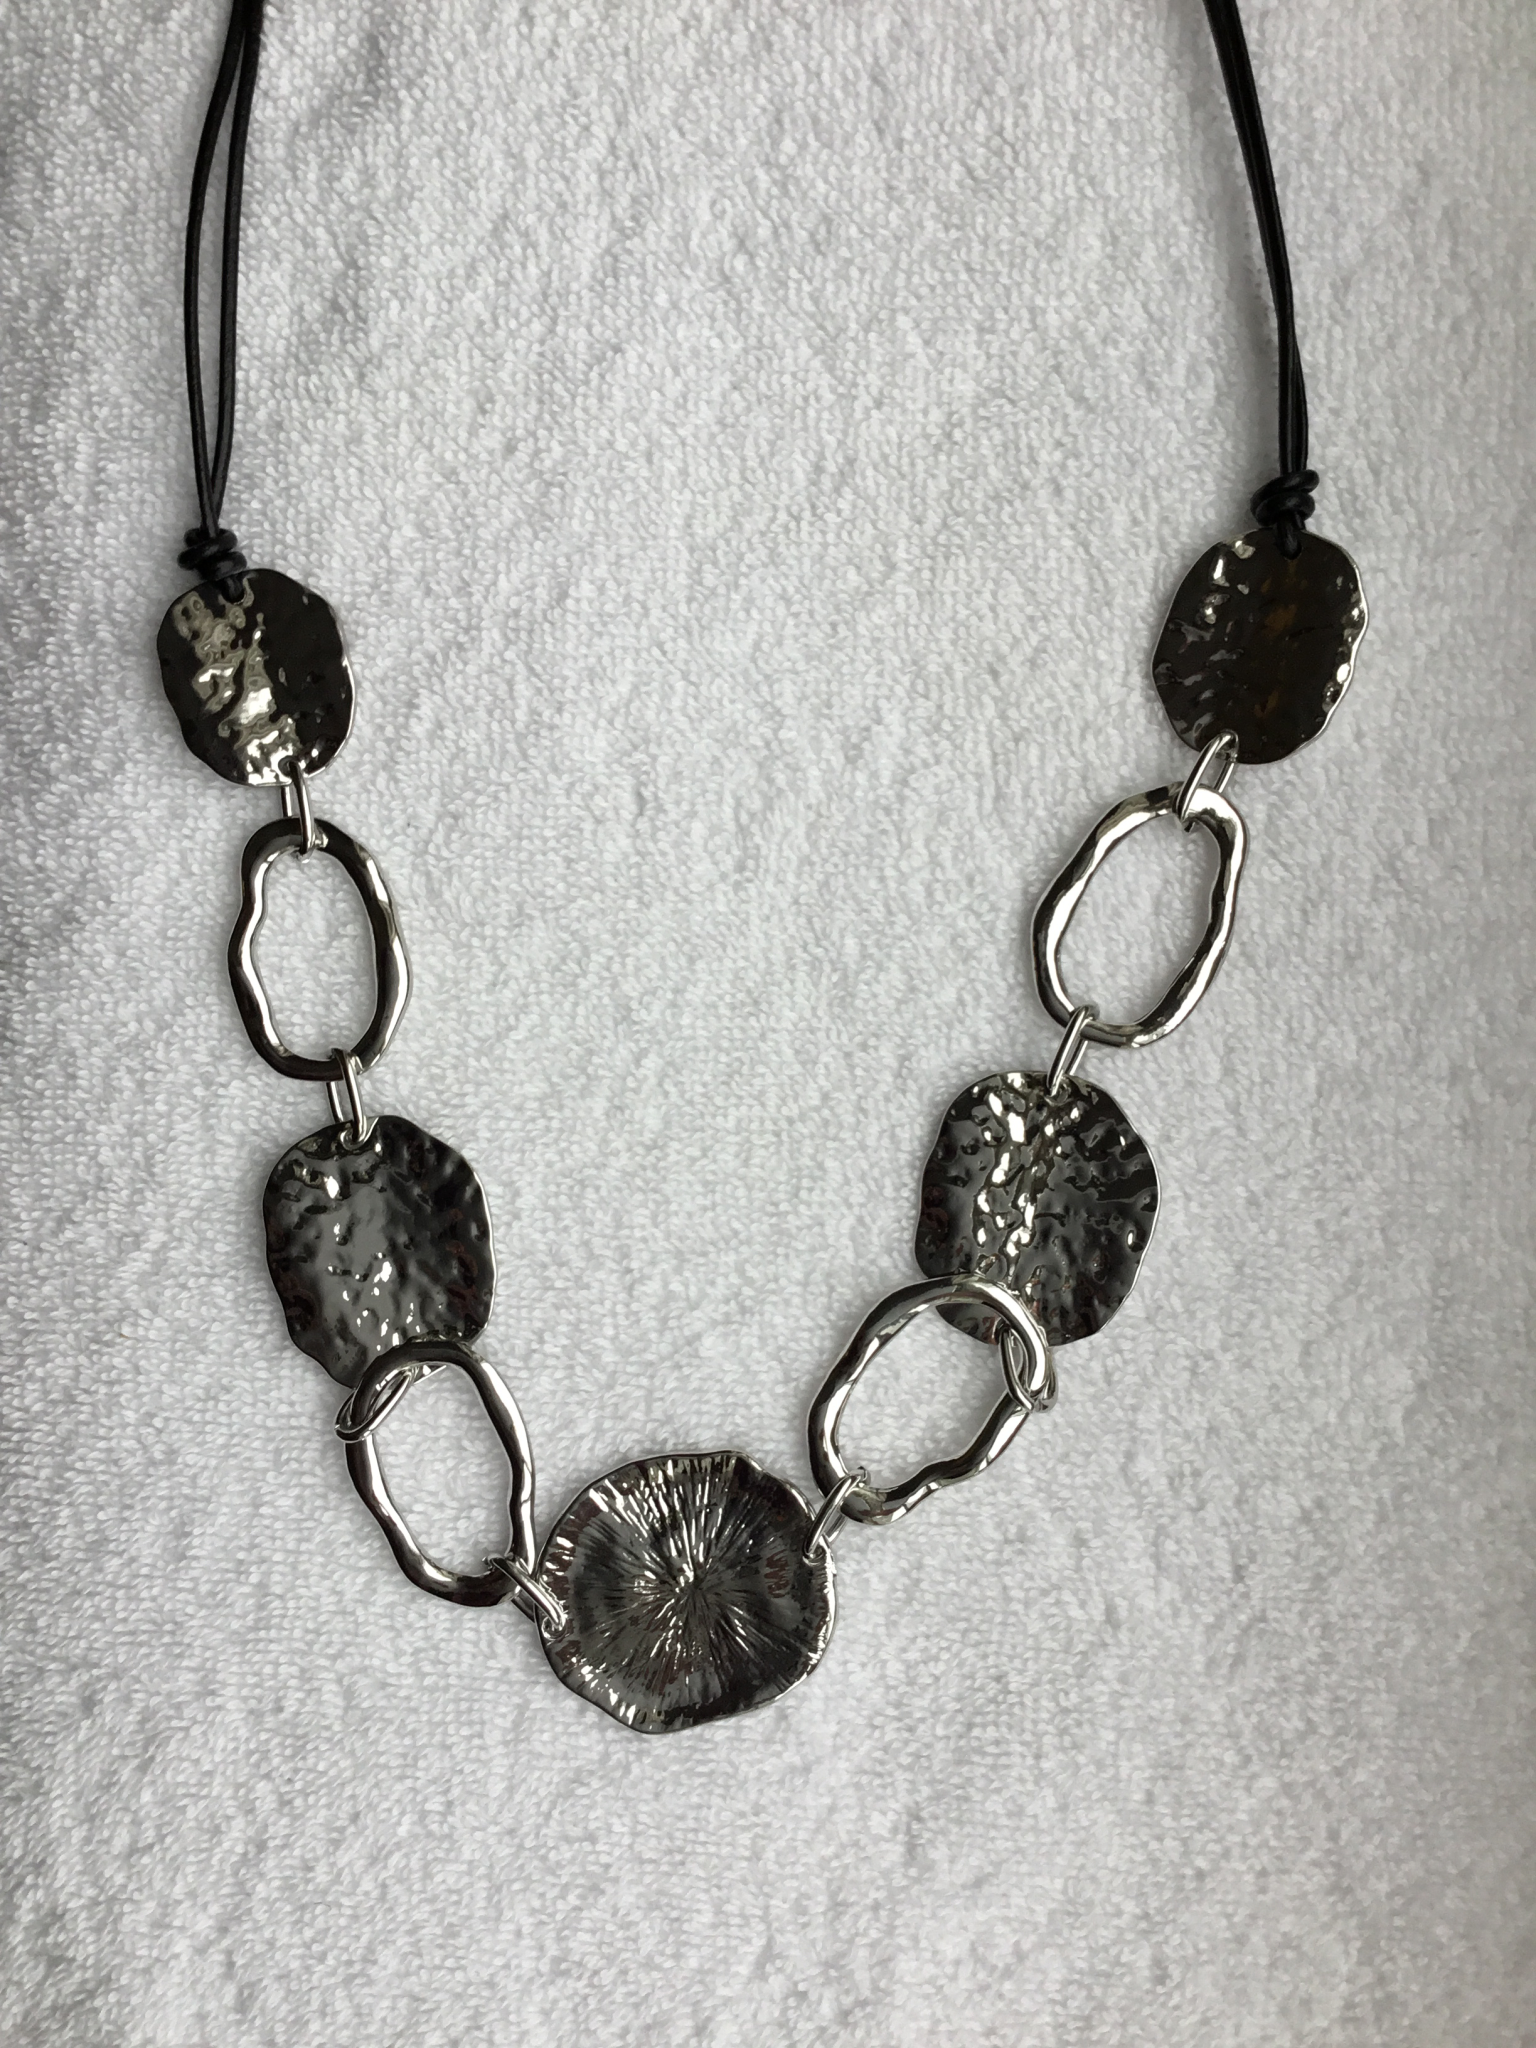 Leather Reversible Necklace with Lily Pad Design JNL-028-6893